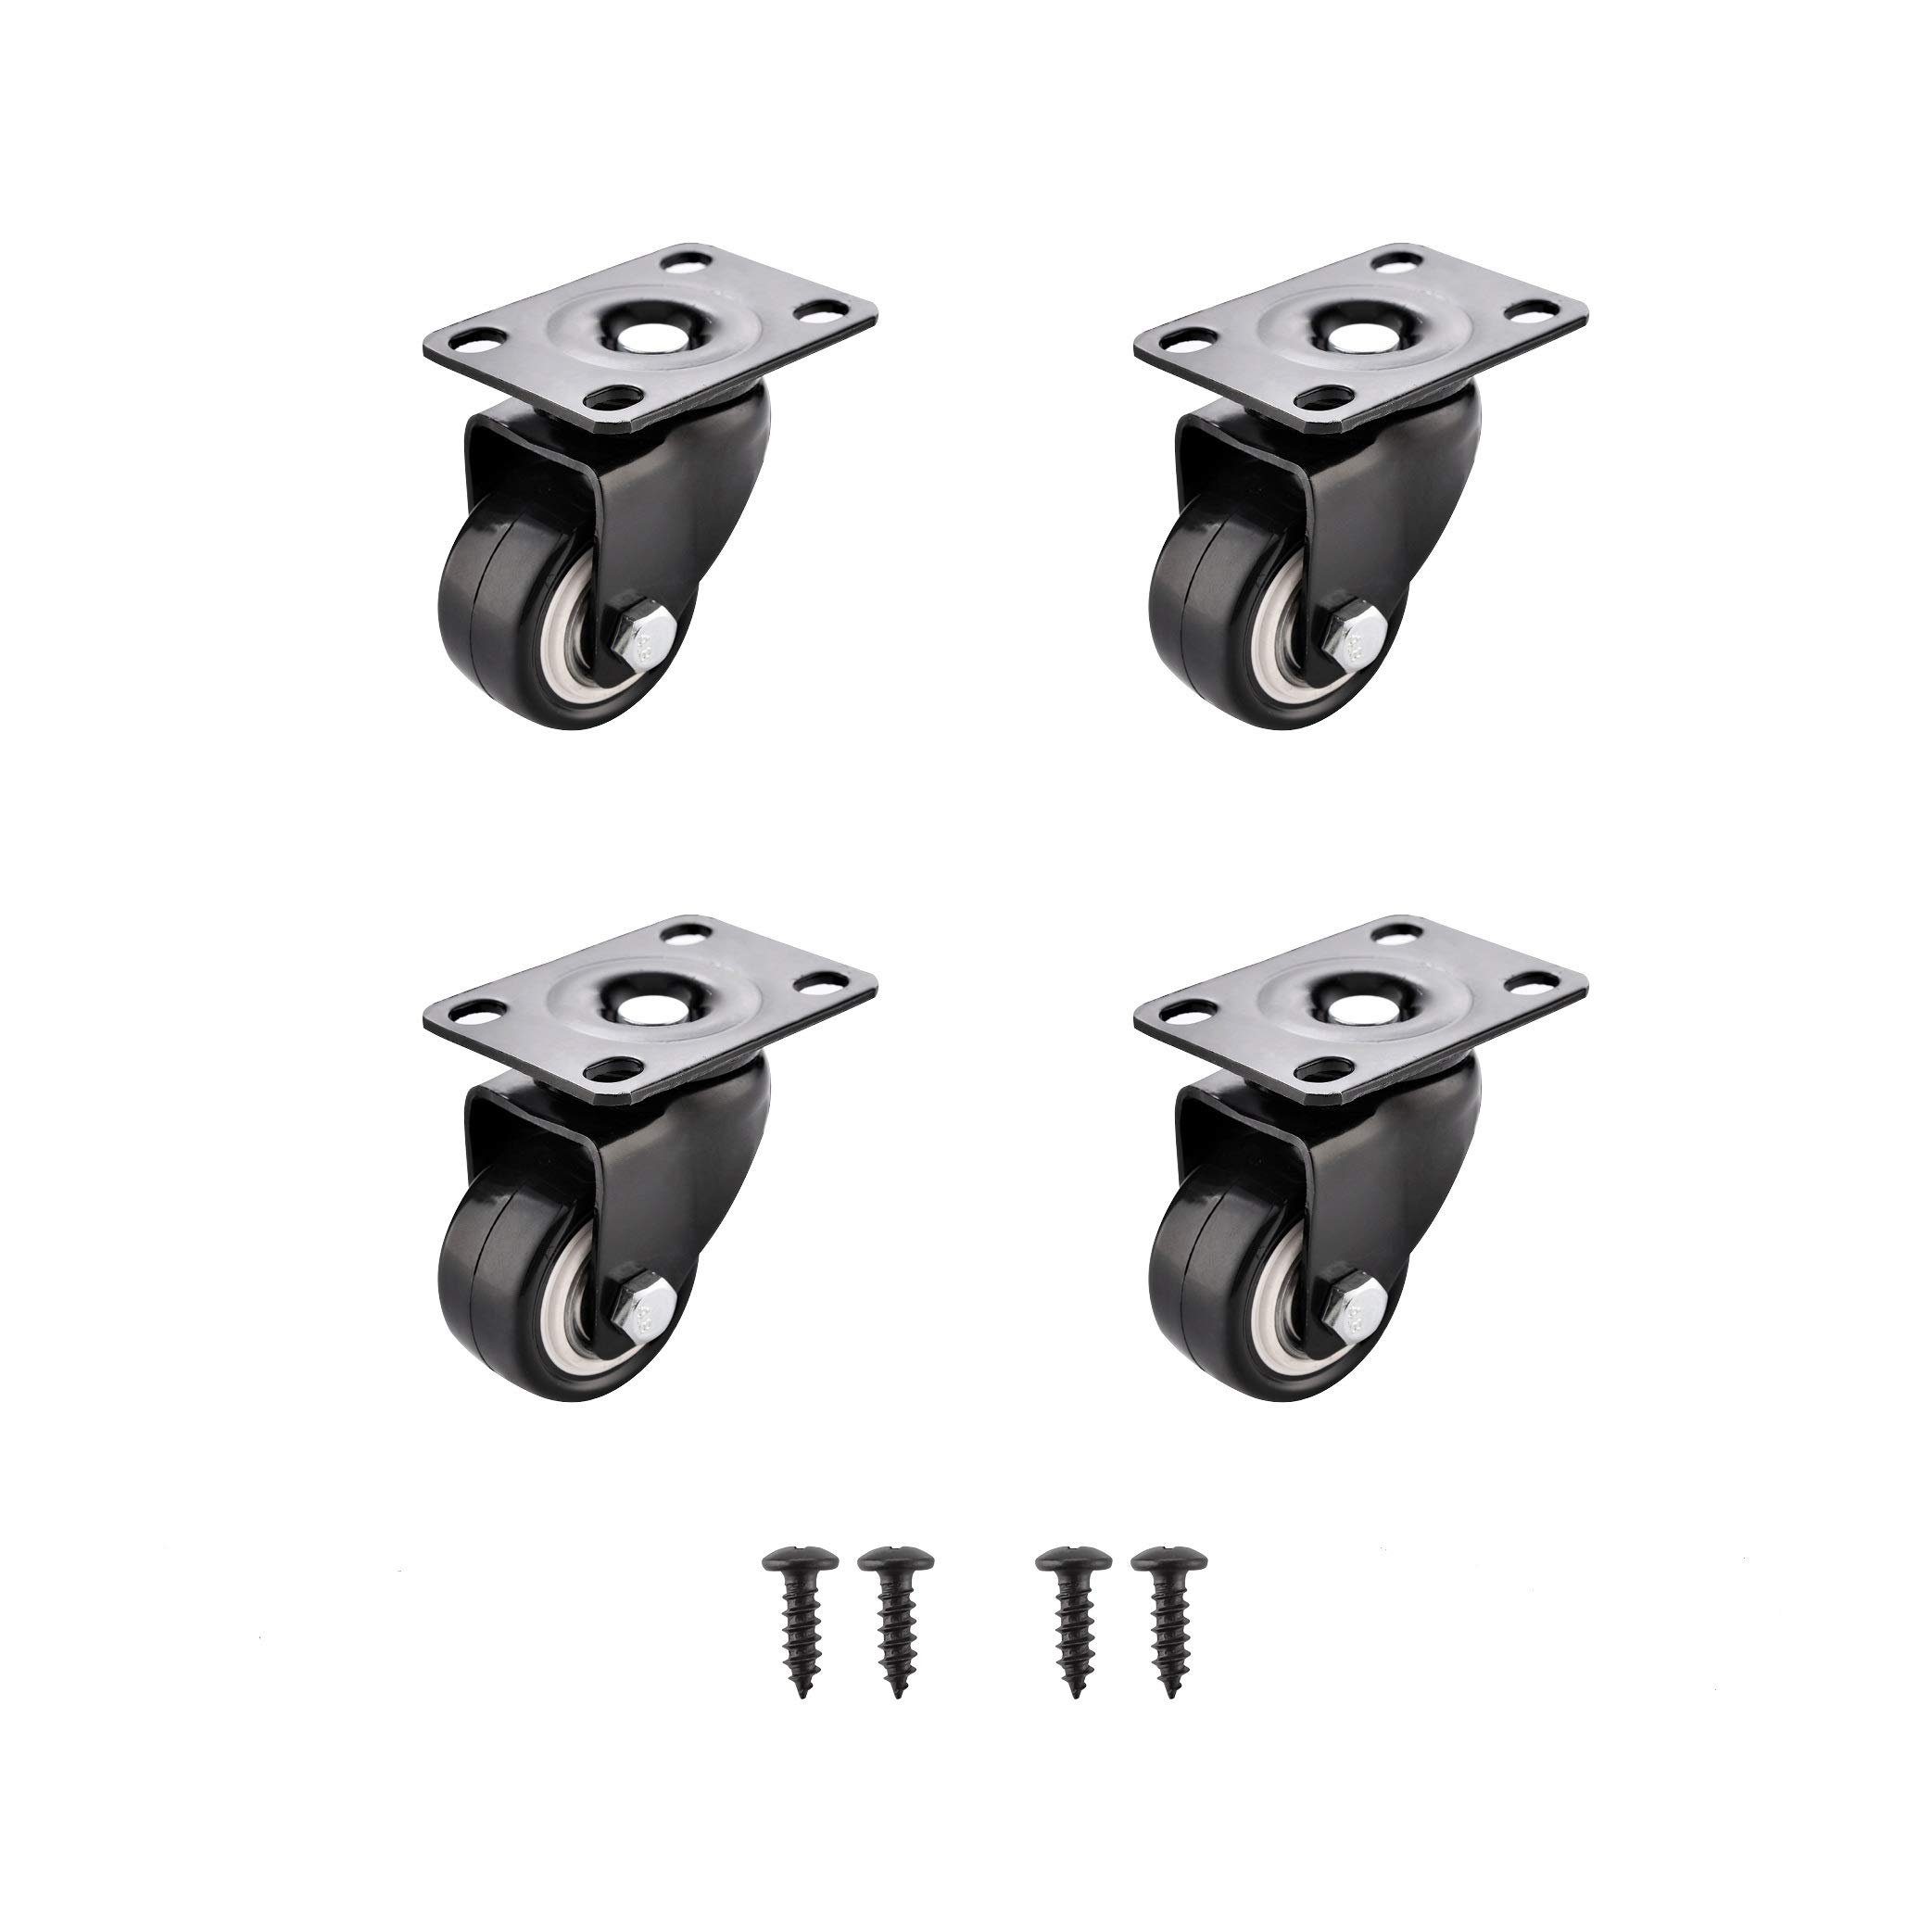 SungMi 4 Pack 1.5'' Heavy Duty Caster Wheels Polyurethane PU Swivel Casters with 360 Degree Top Plate 310lb Total Capacity for Set of 4 Black (4 Without Brakes) Screws Included SM-AMS-220004